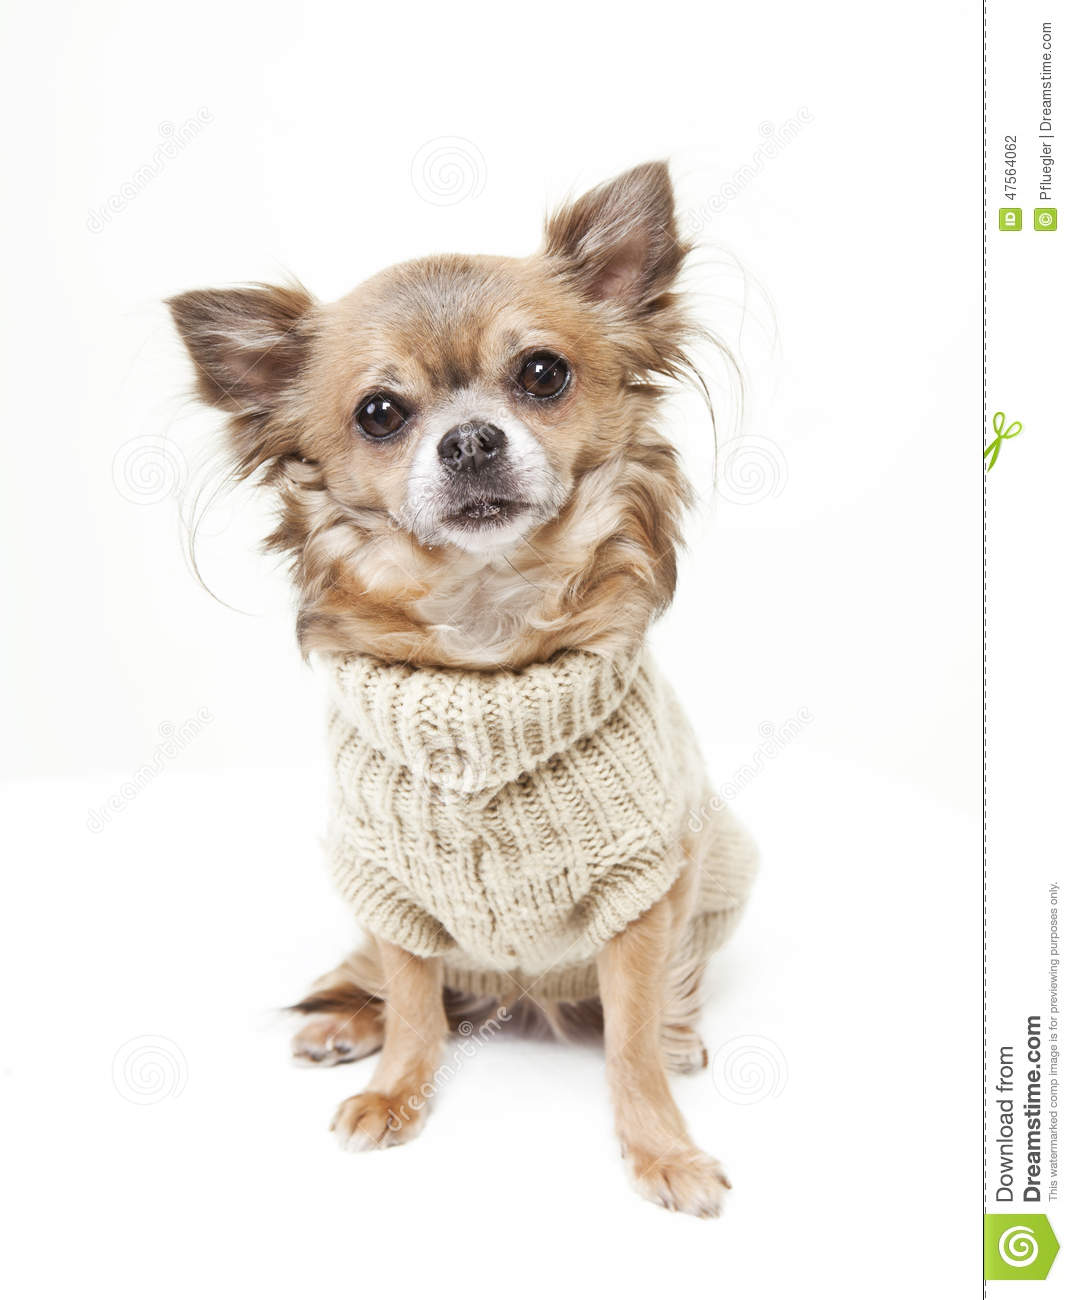 Chihuahua With Wool Sweater Stock Photo Image Of Clothing Looking